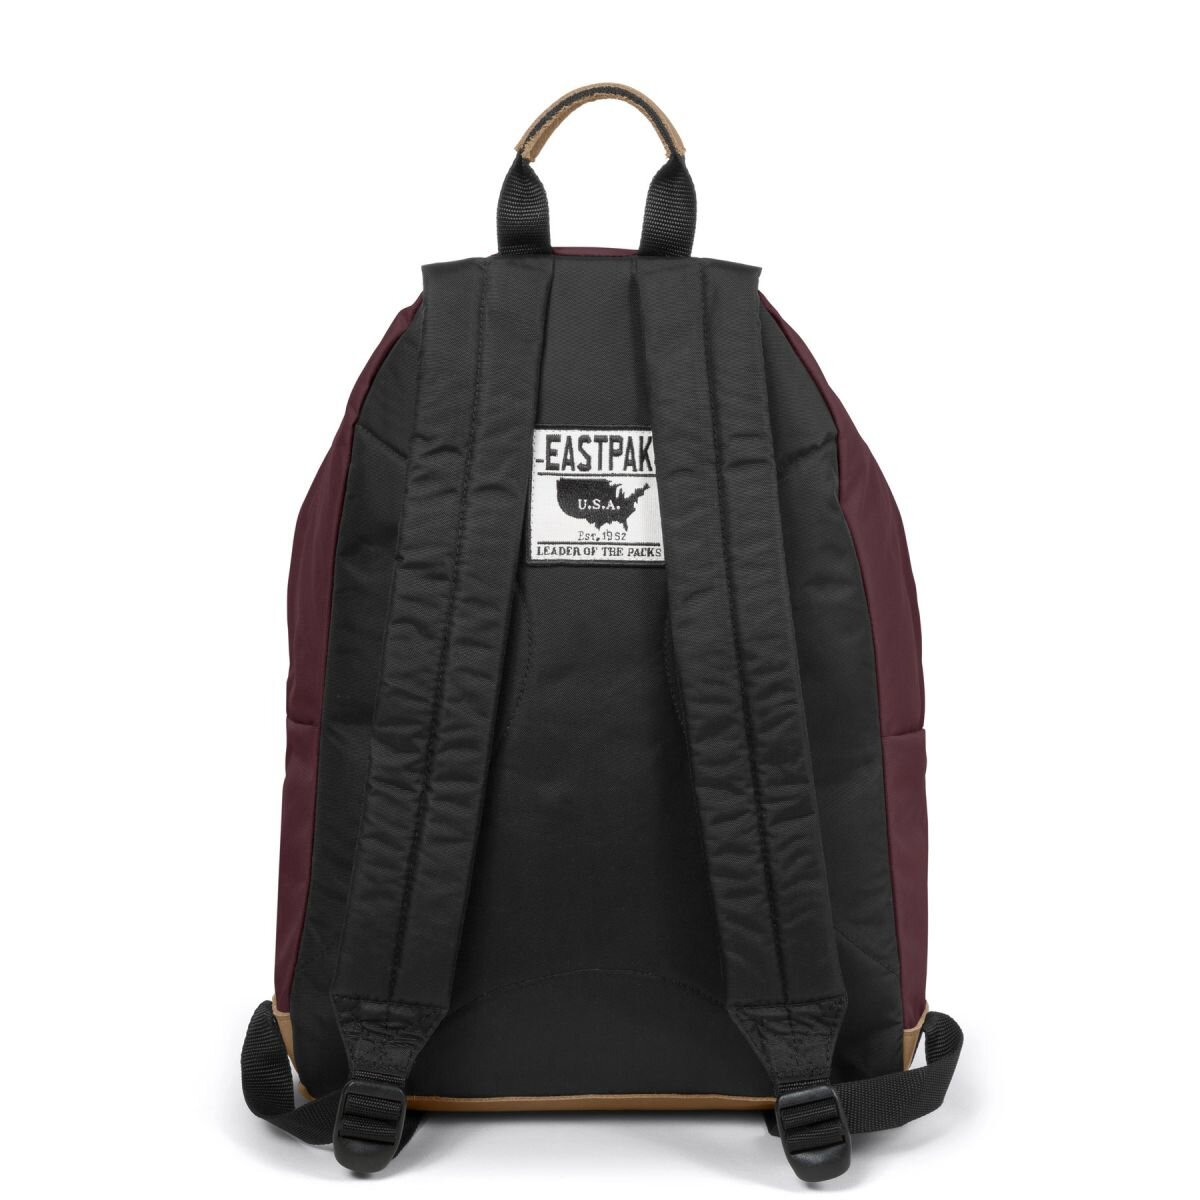 Eastpak Wyoming Backpack in Wine — Cary Lane